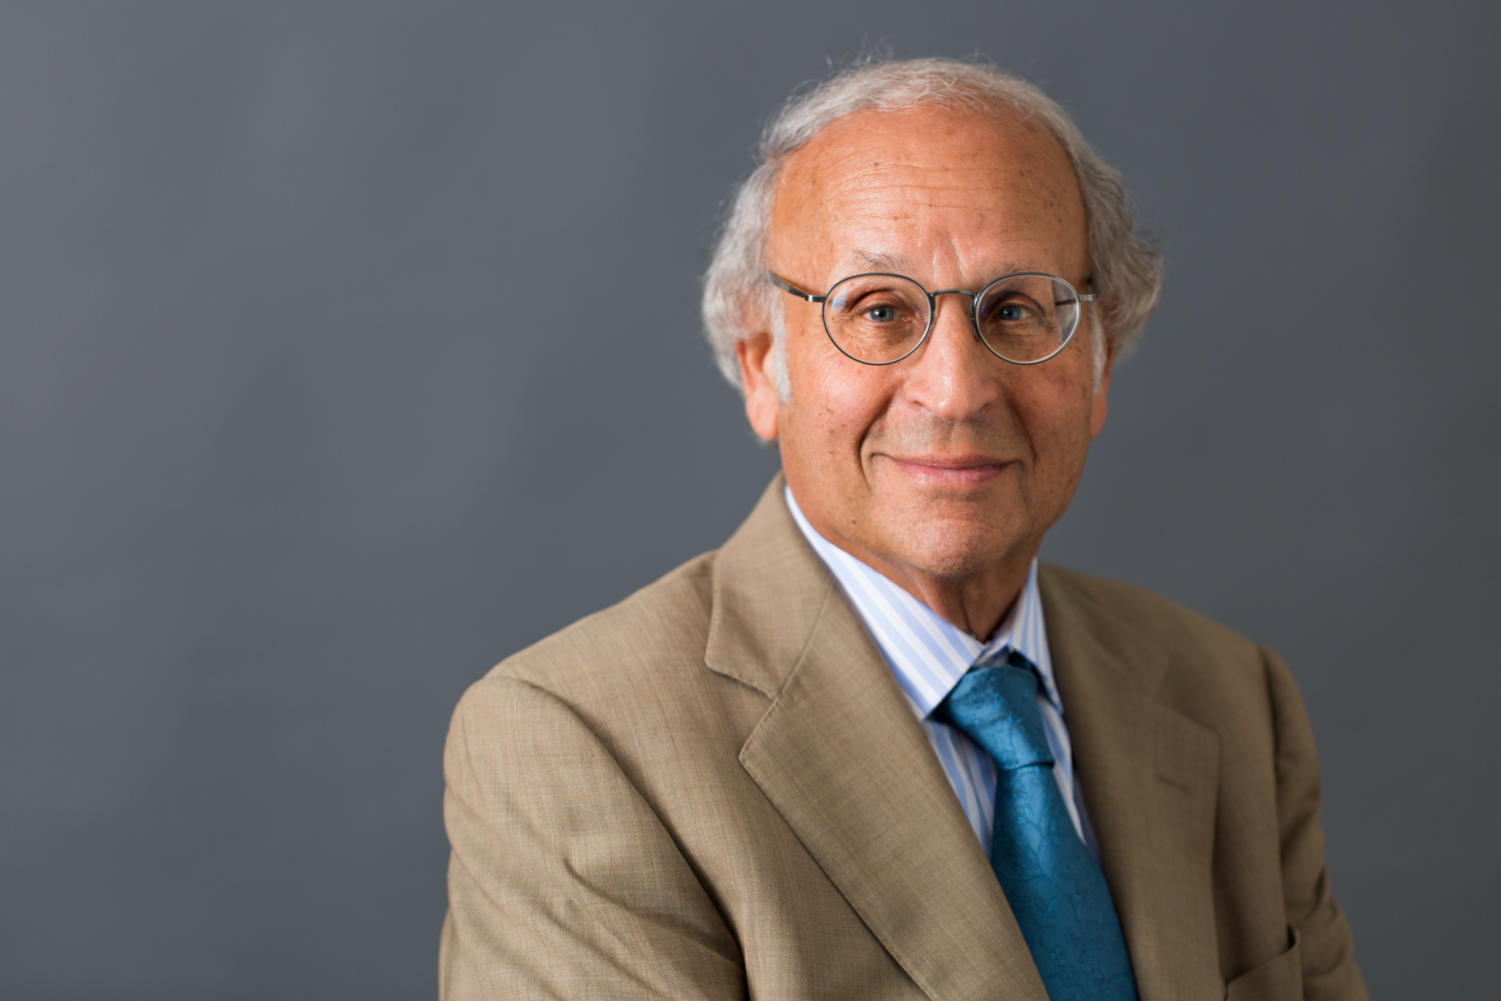 Dr. Arthur Levine worked as senior vice chancellor for the health sciences for more than 20 years.